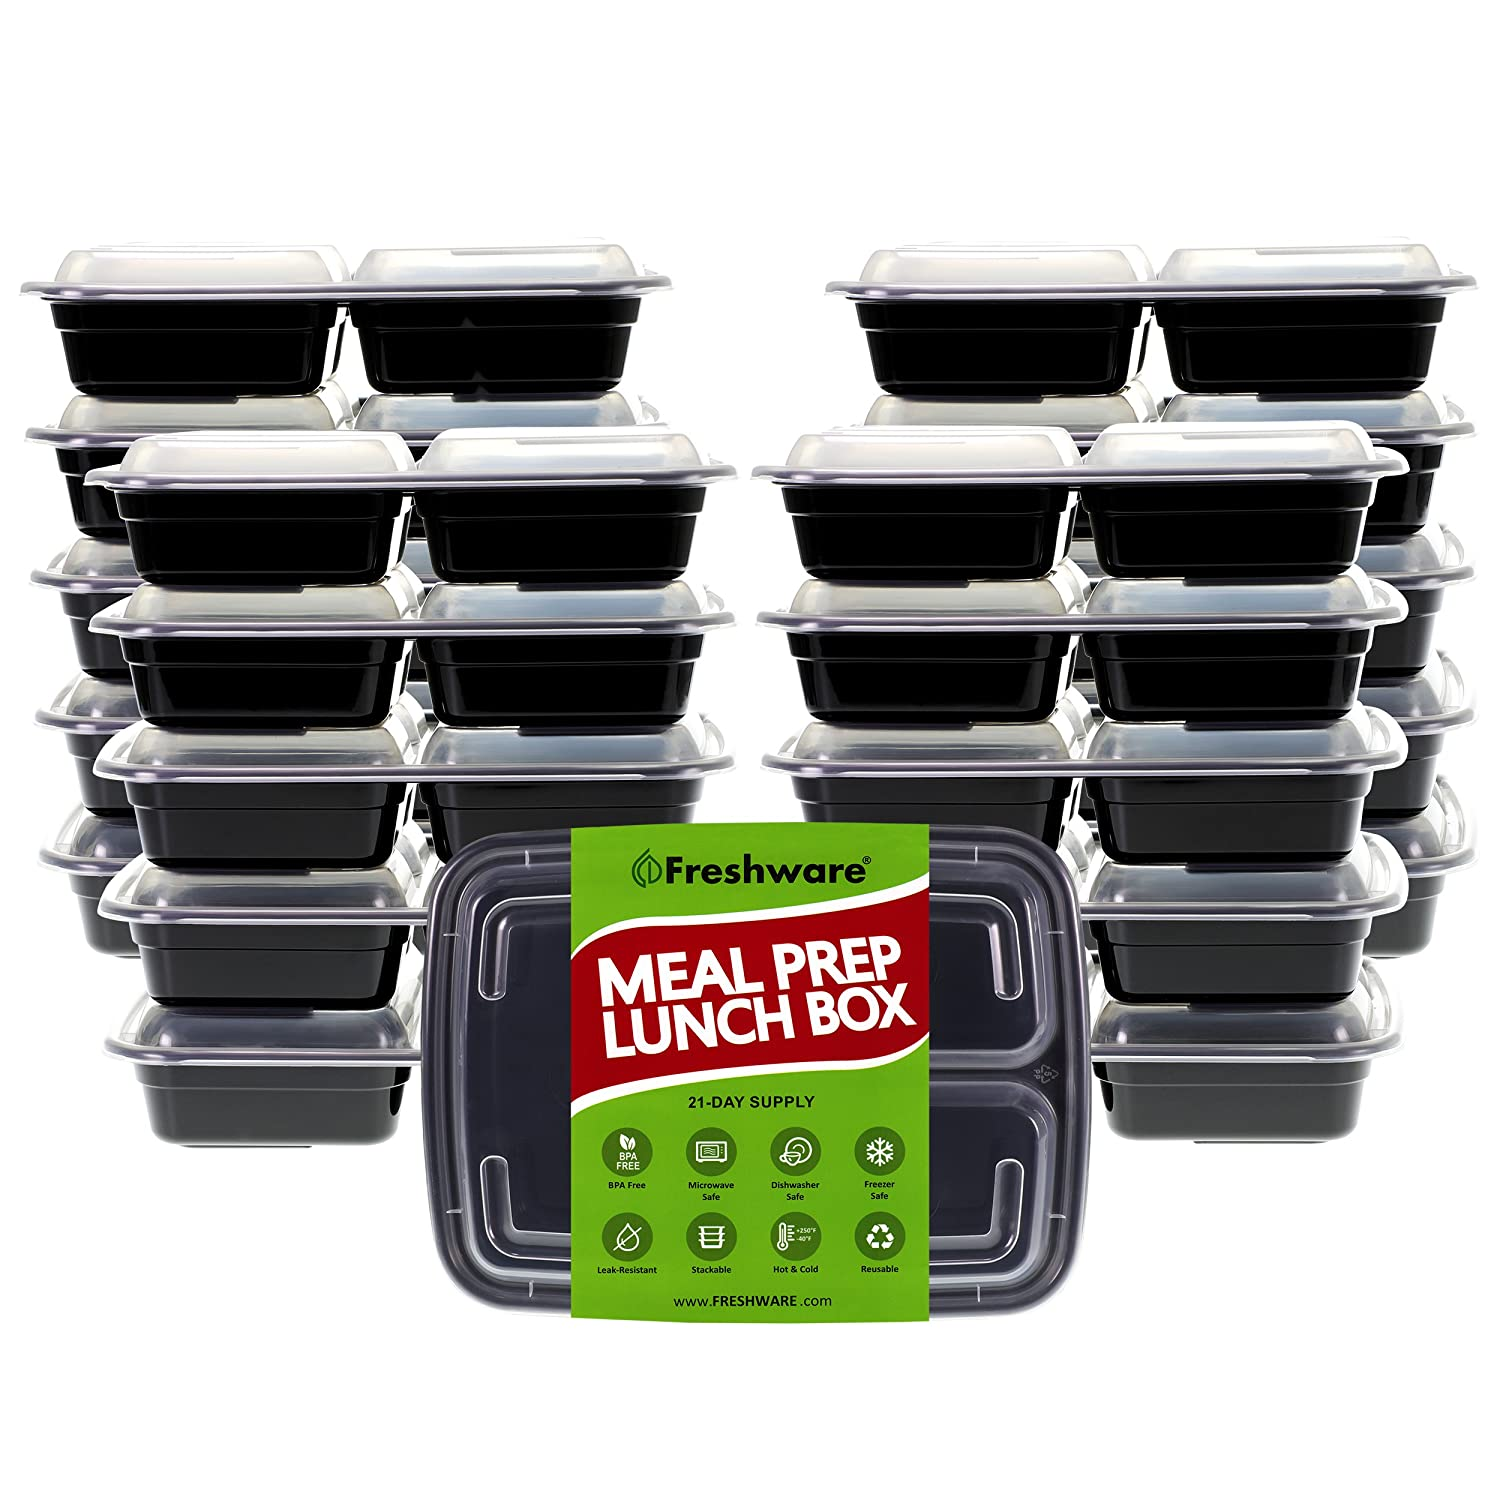 Freshware Meal Prep Containers [21 Pack] 3 Compartment With Lids, Food Storage Bento Box | Bpa Free | Stackable | Lunch Boxes, Microwave/Dishwasher/Freezer Safe, Portion Control, 21 Day Fix (24 Oz) by Freshware